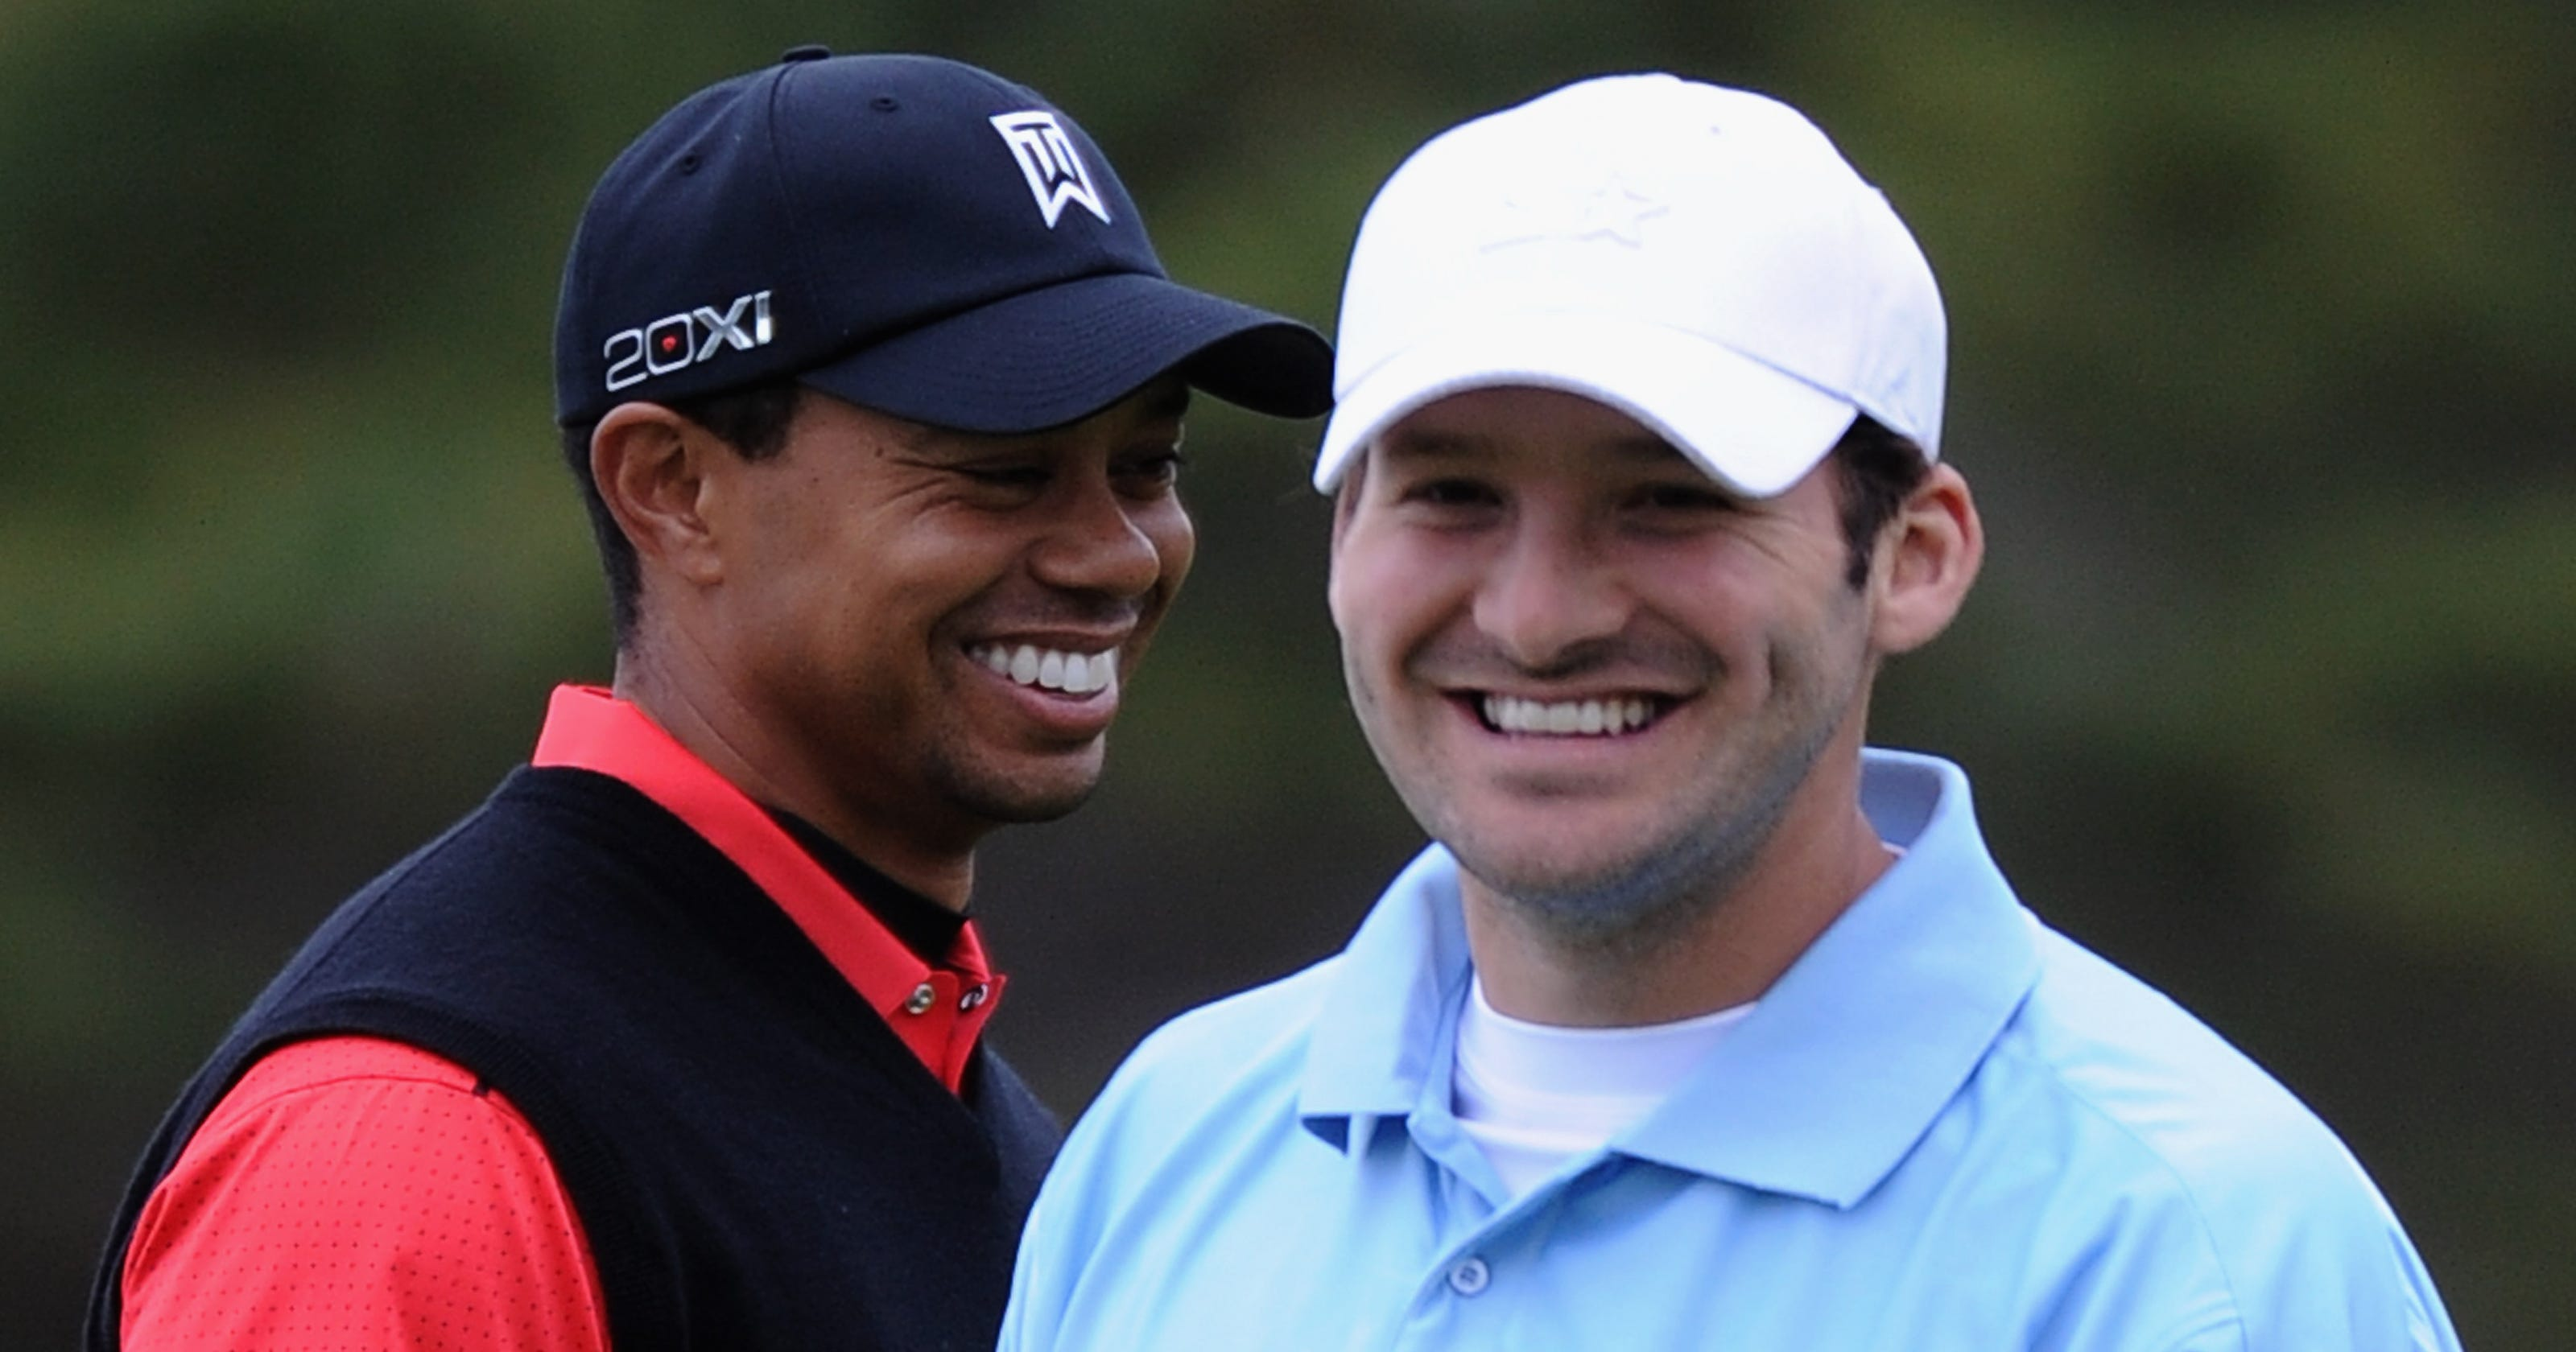 0a47ebda609 Tony Romo wrong to accept PGA Tour sponsor s exemption